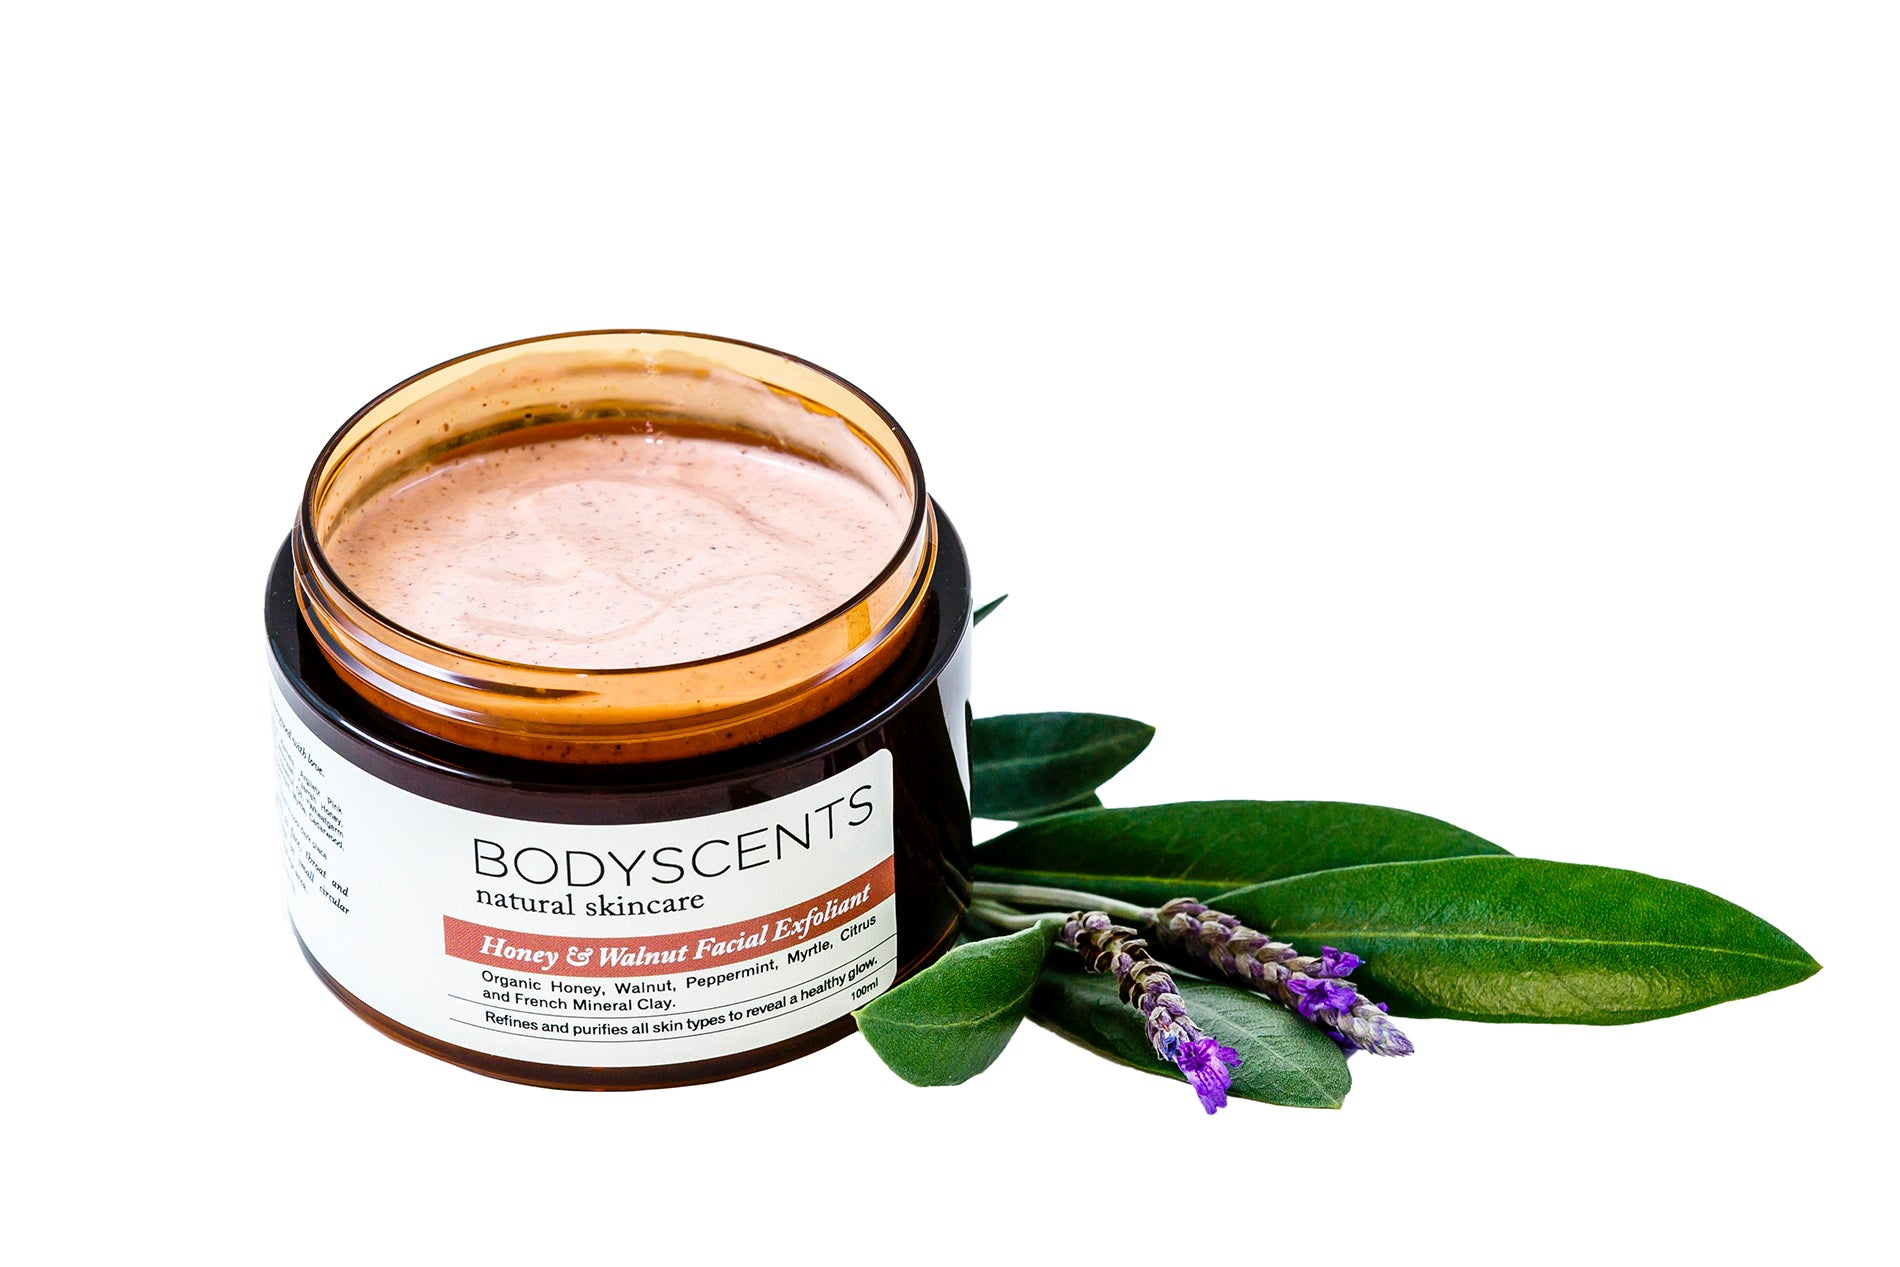 Honey Walnut Exfoliant - Bodyscents